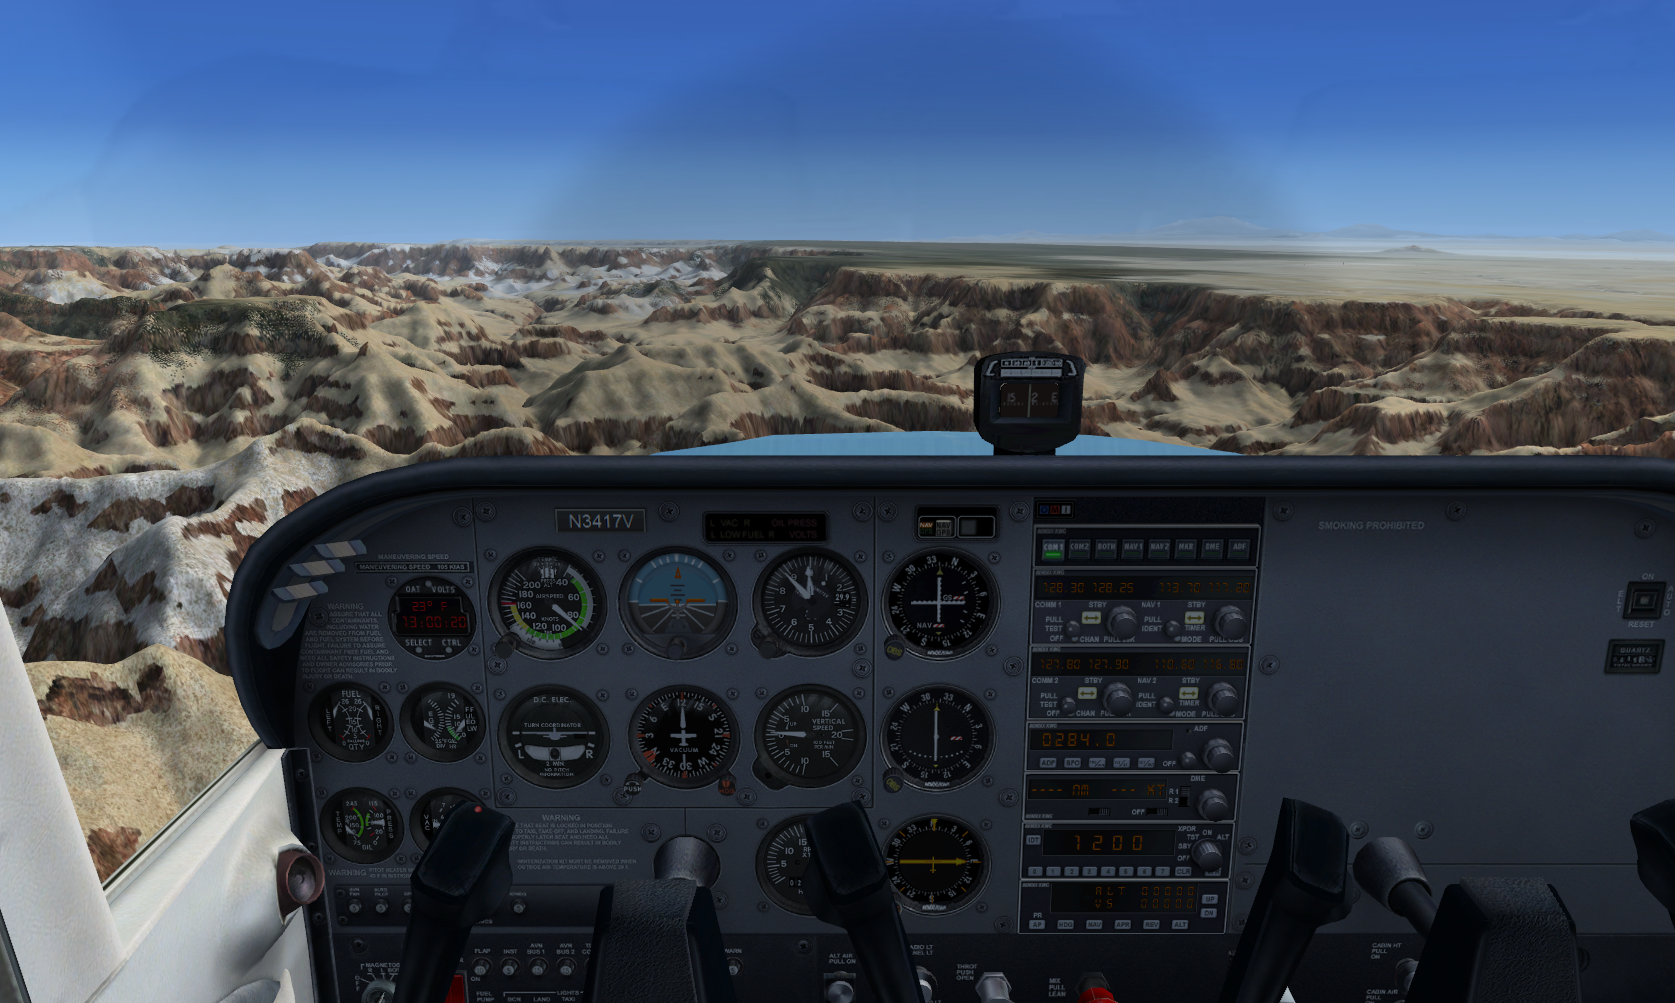 How to Solve Bad Flying Habits With Your Home Flight Simulator